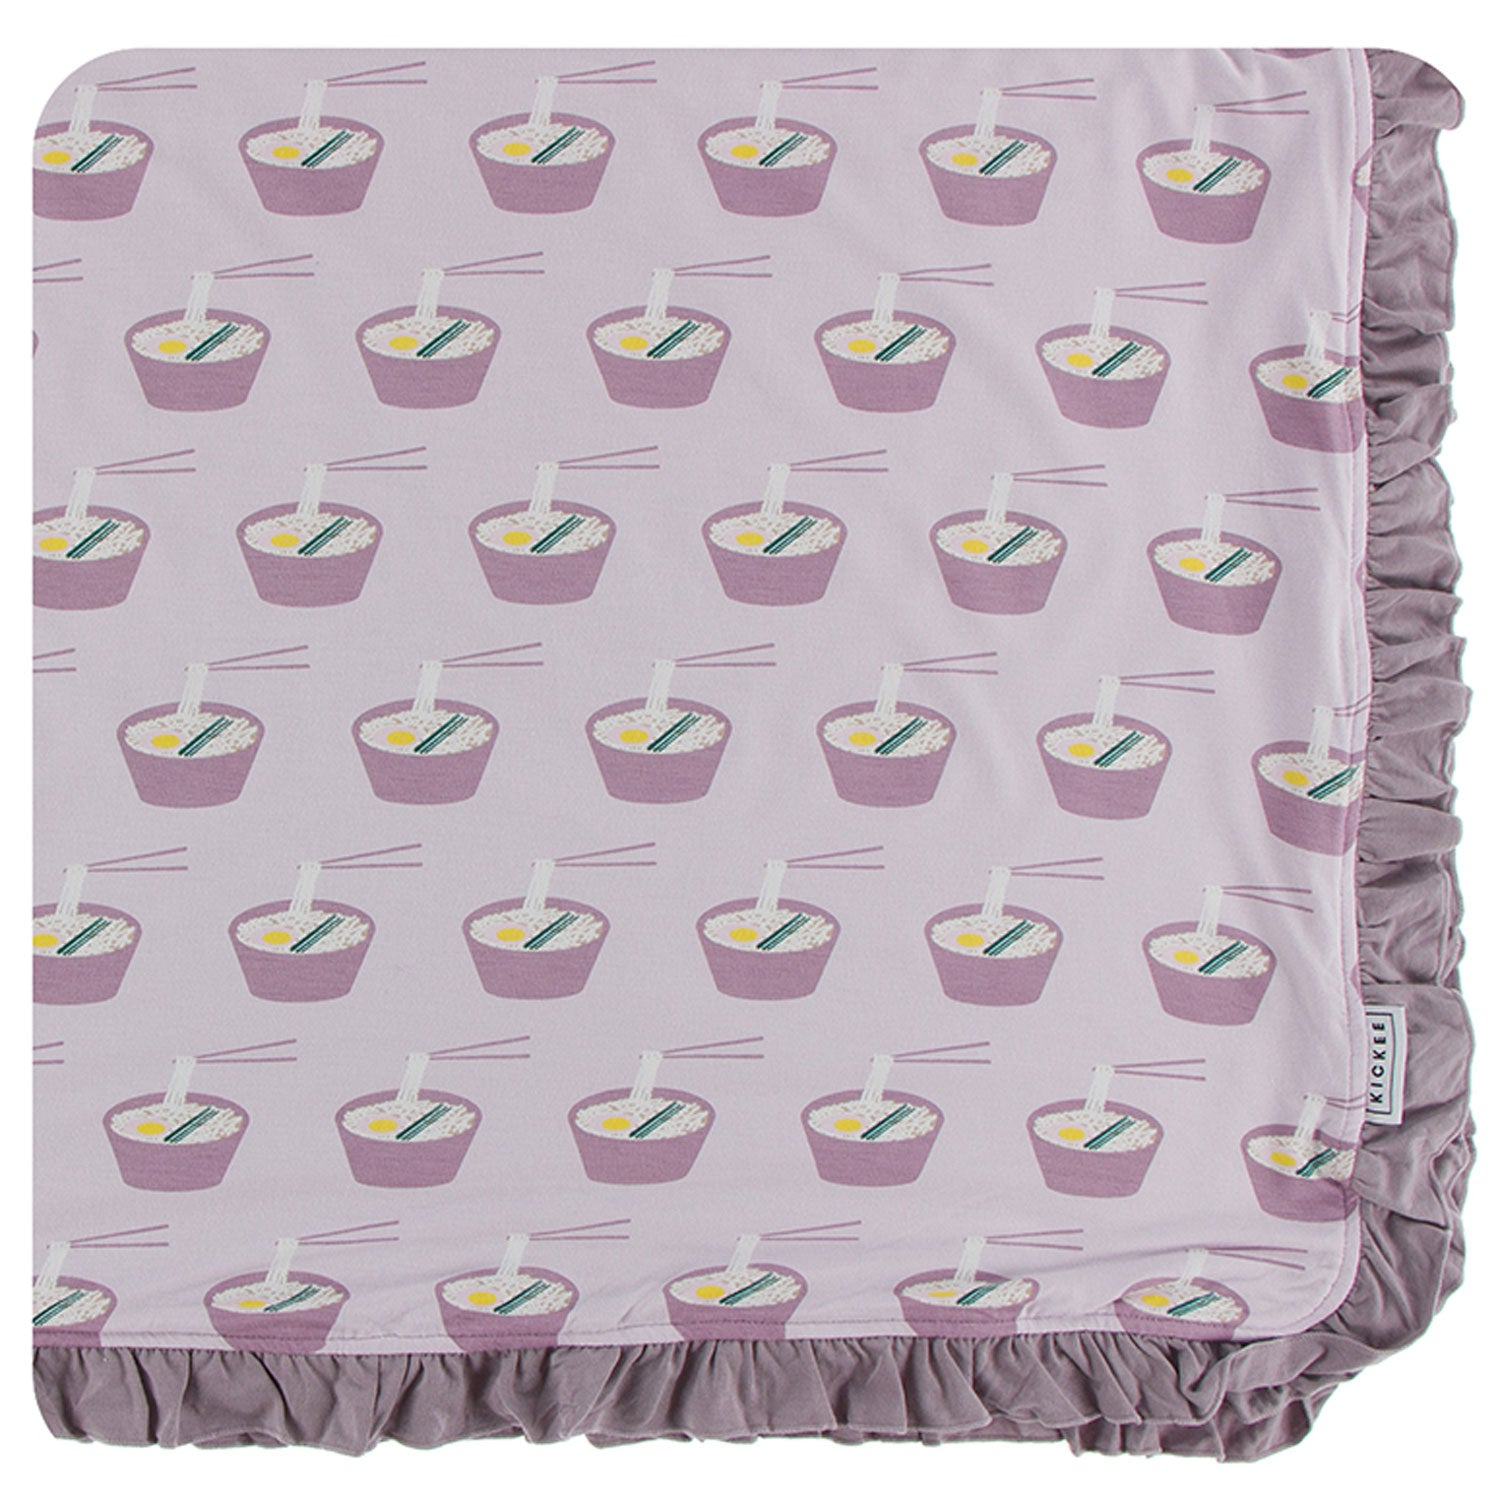 KicKee Pants Ruffle Toddler Blanket - Thistle Ramen